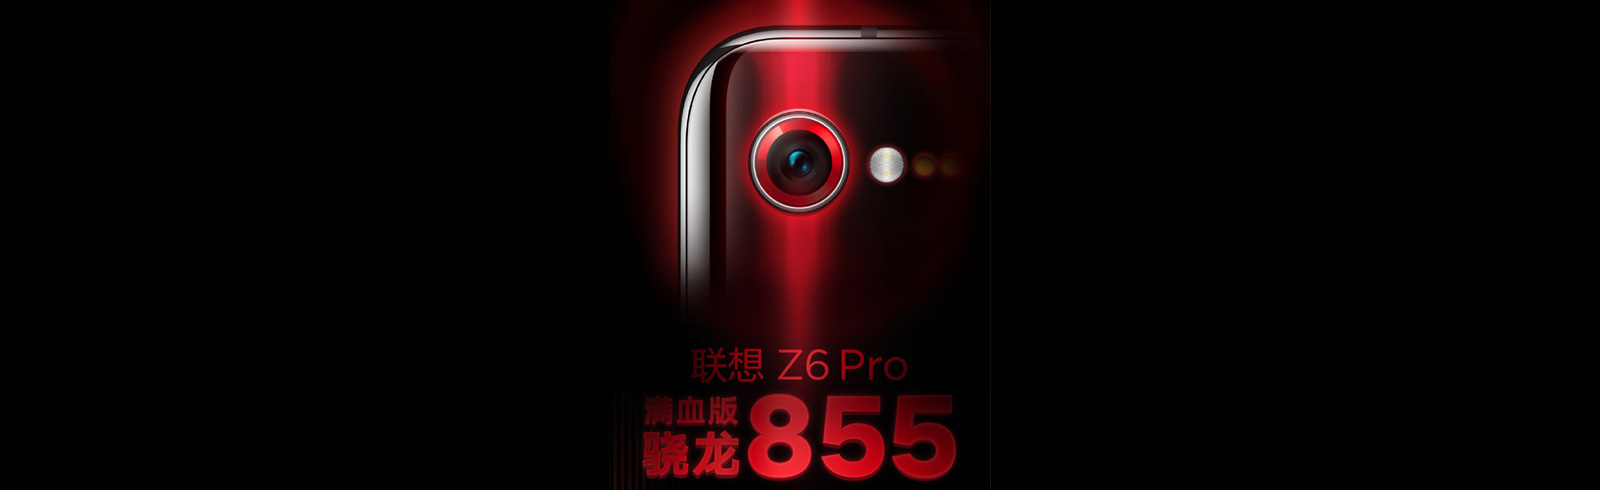 Lenovo Z6 Pro confirmed to pack a Snapdragon 855 chipset